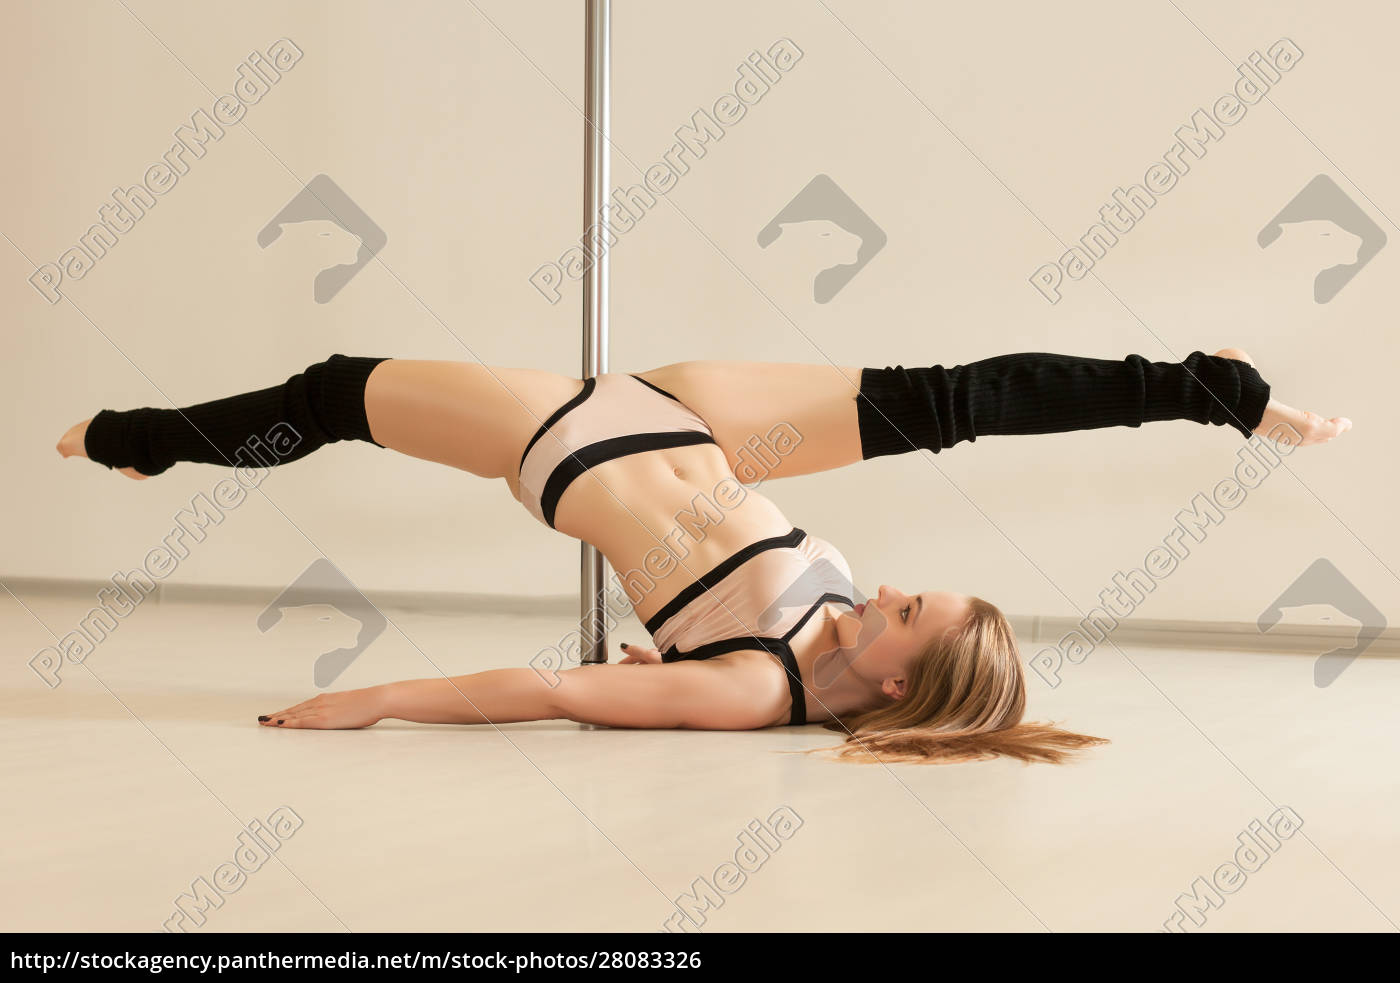 young, slim, poledance, woman, stretching, in - 28083326